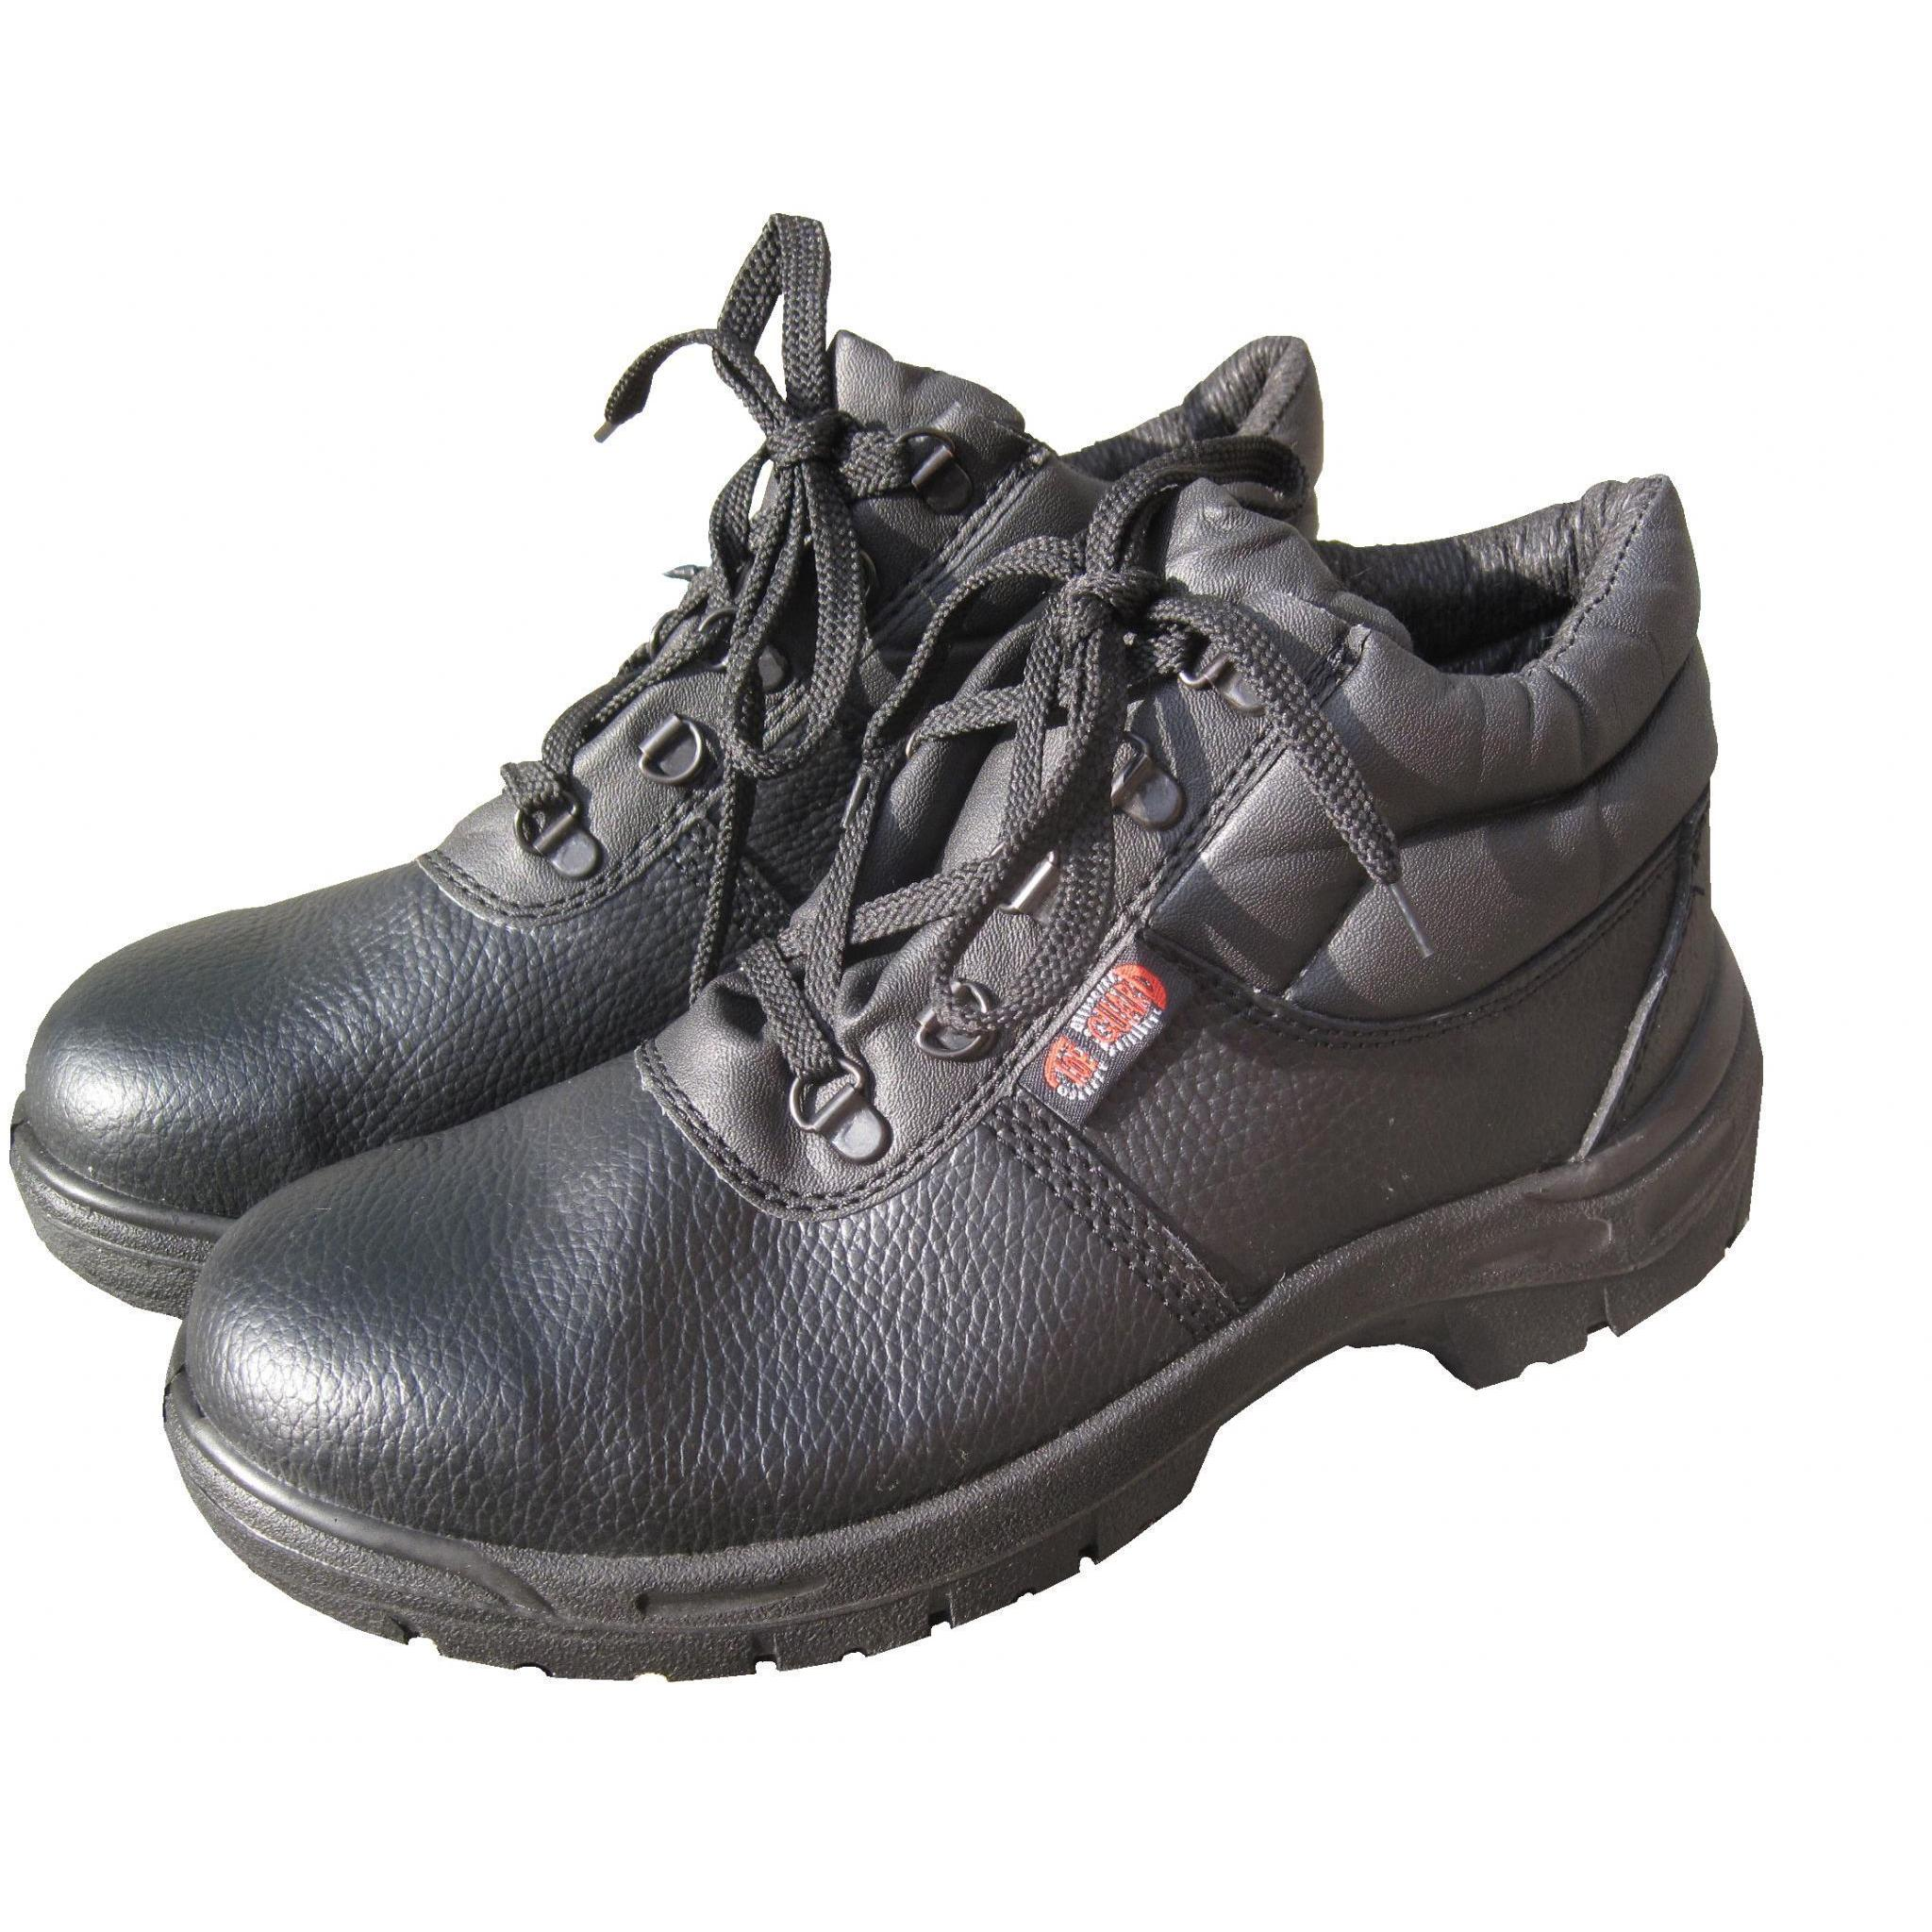 d9b558dc2f8 Safety Boots (size 9) BLACK CHUKKA Leather Safety Work Boots , Steel Toe  Cap & Midsole